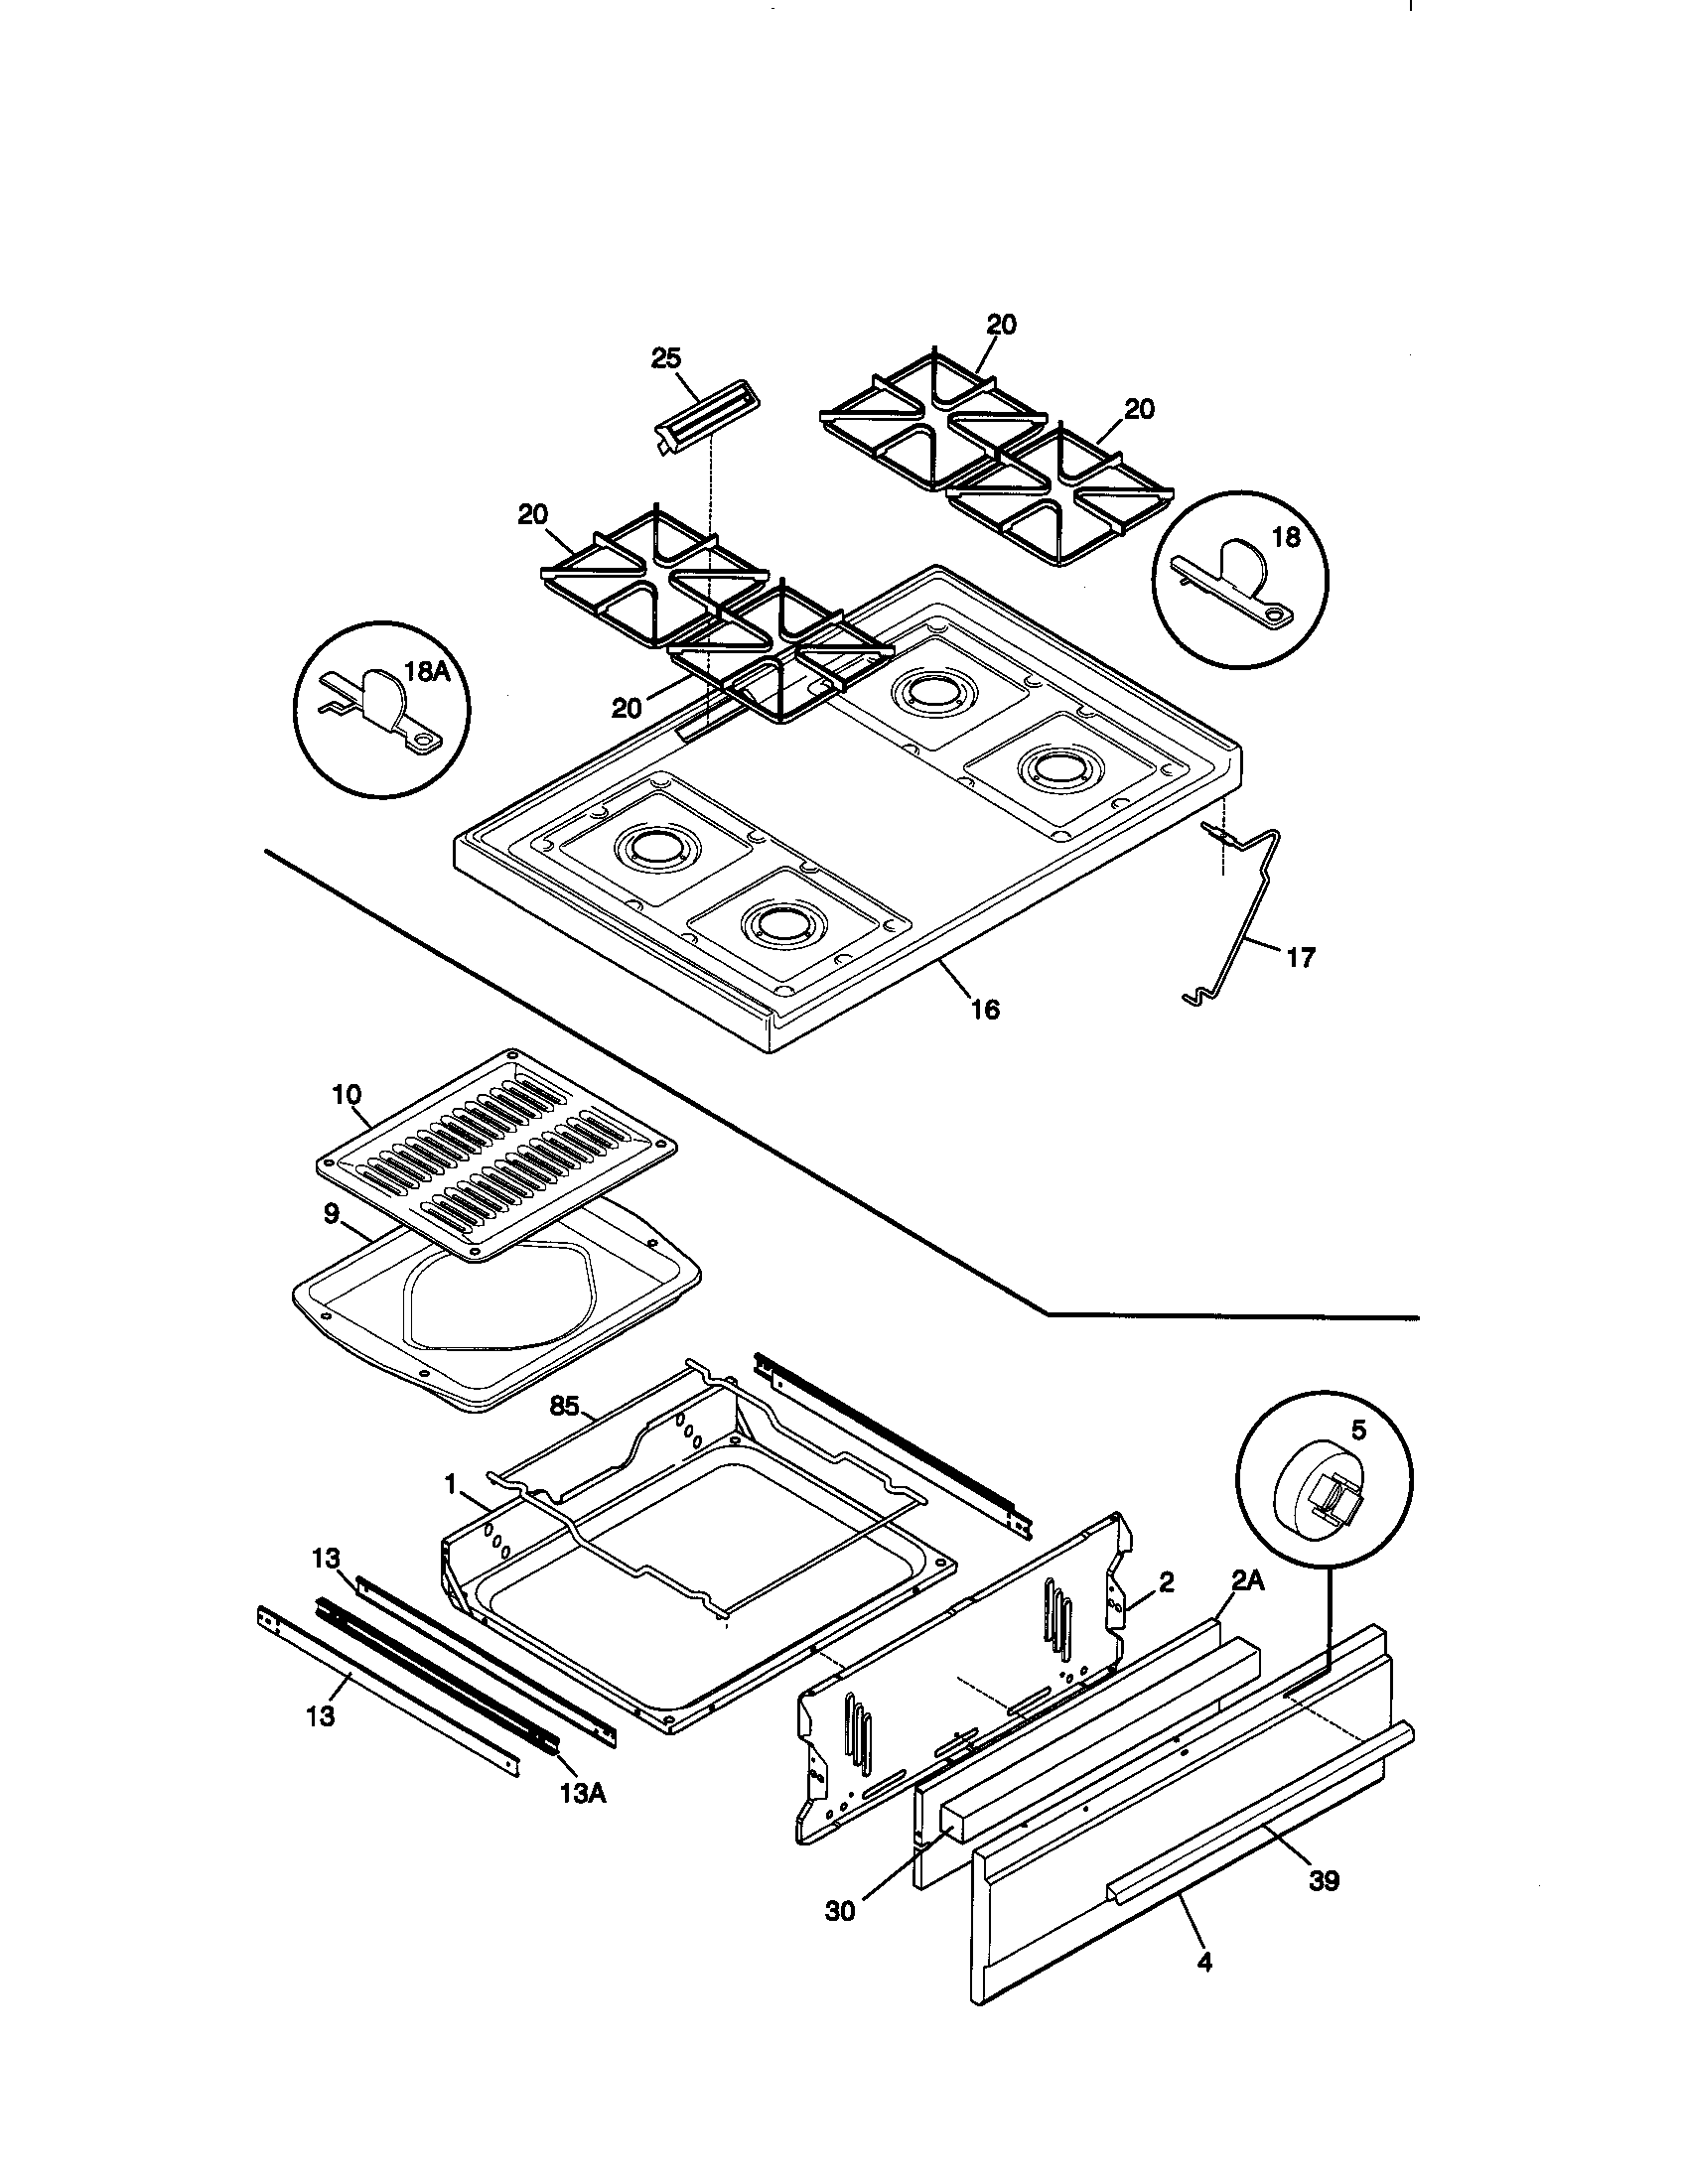 Kenmore 79071106892 top/drawer diagram